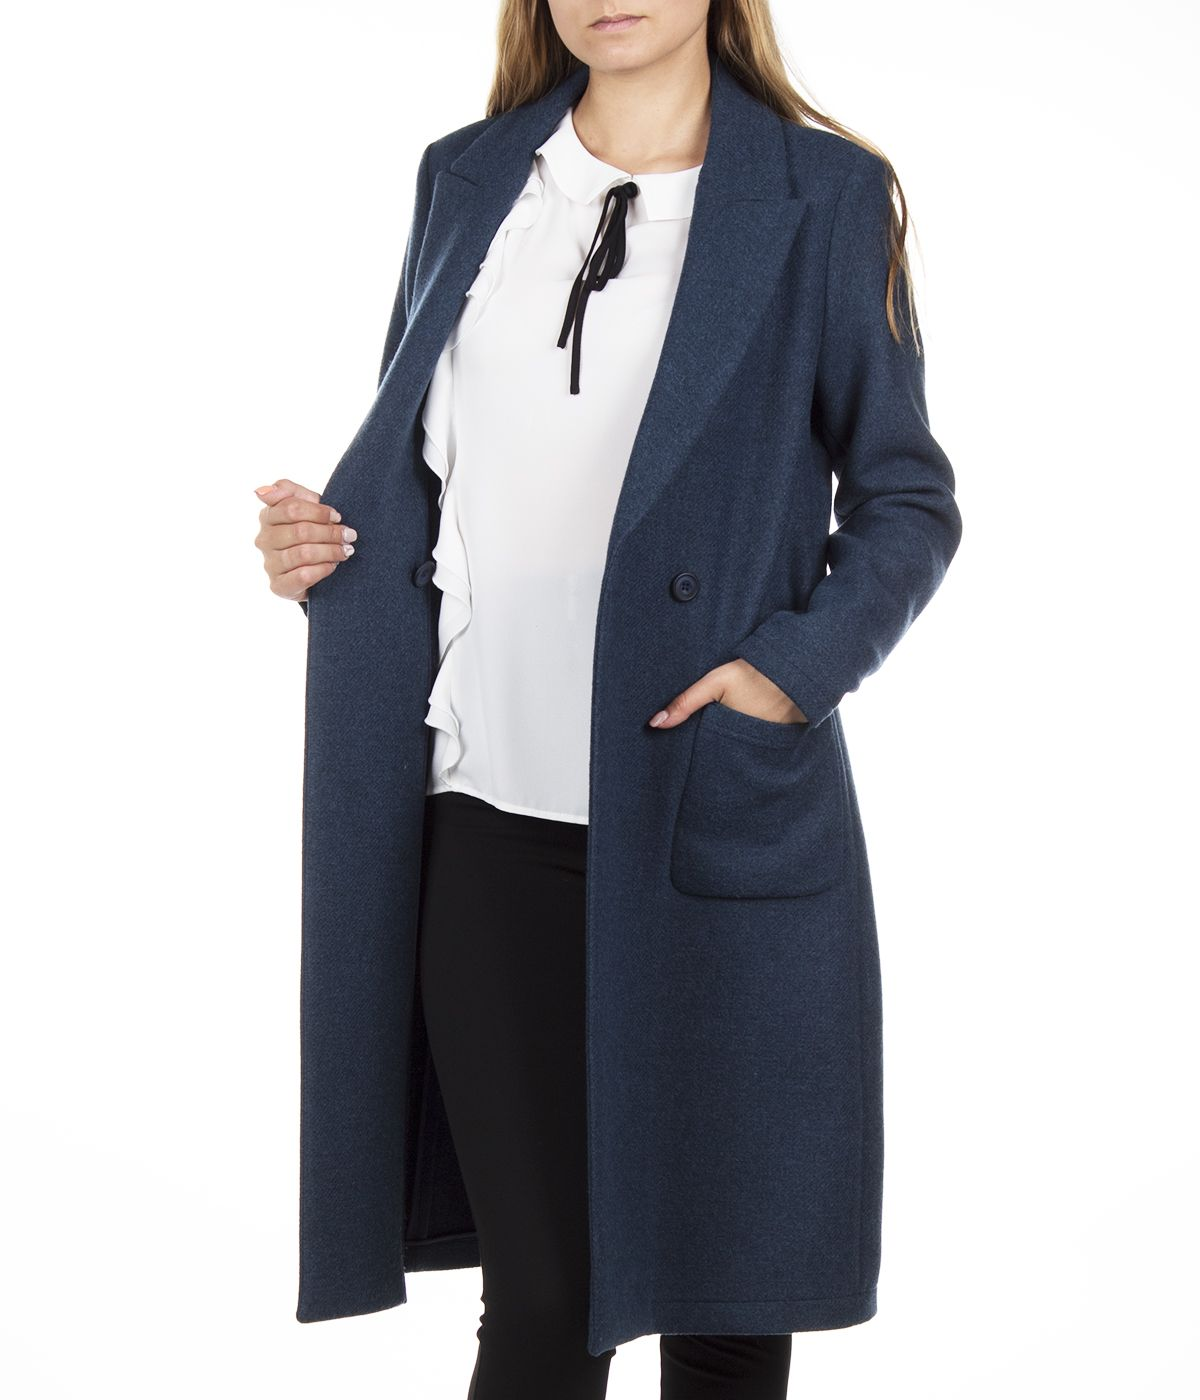 DARK BLUE WOOL COAT WITH ASYMMETRIC CLOSURE 3